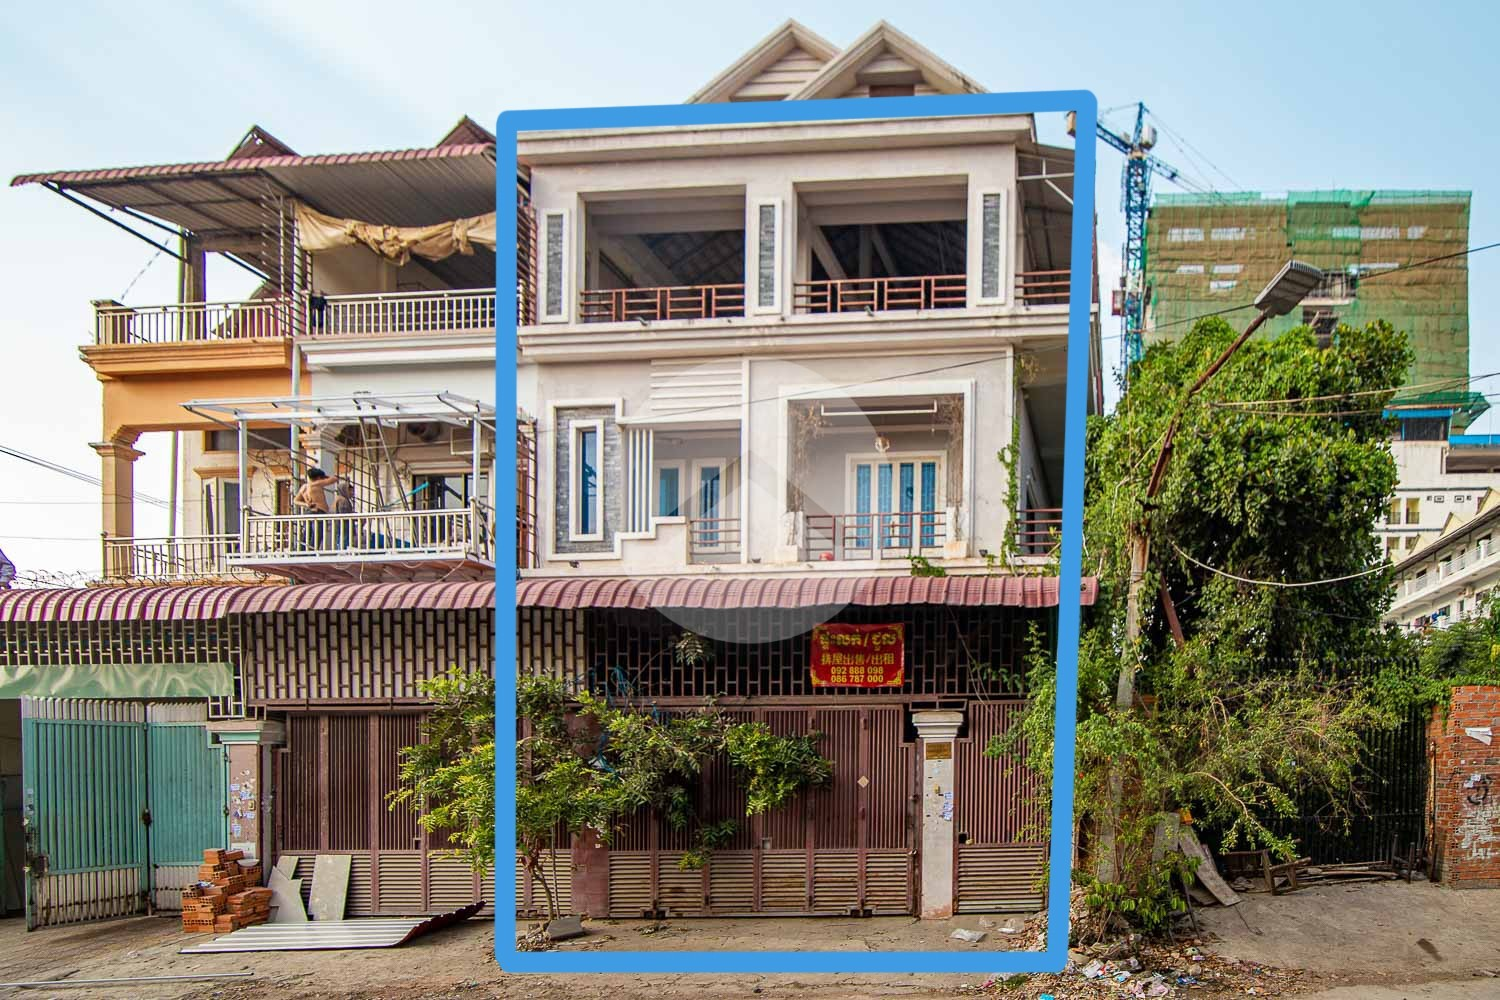 6 Bedroom Flat For Rent  - Khan Meanchey, Phnom Penh